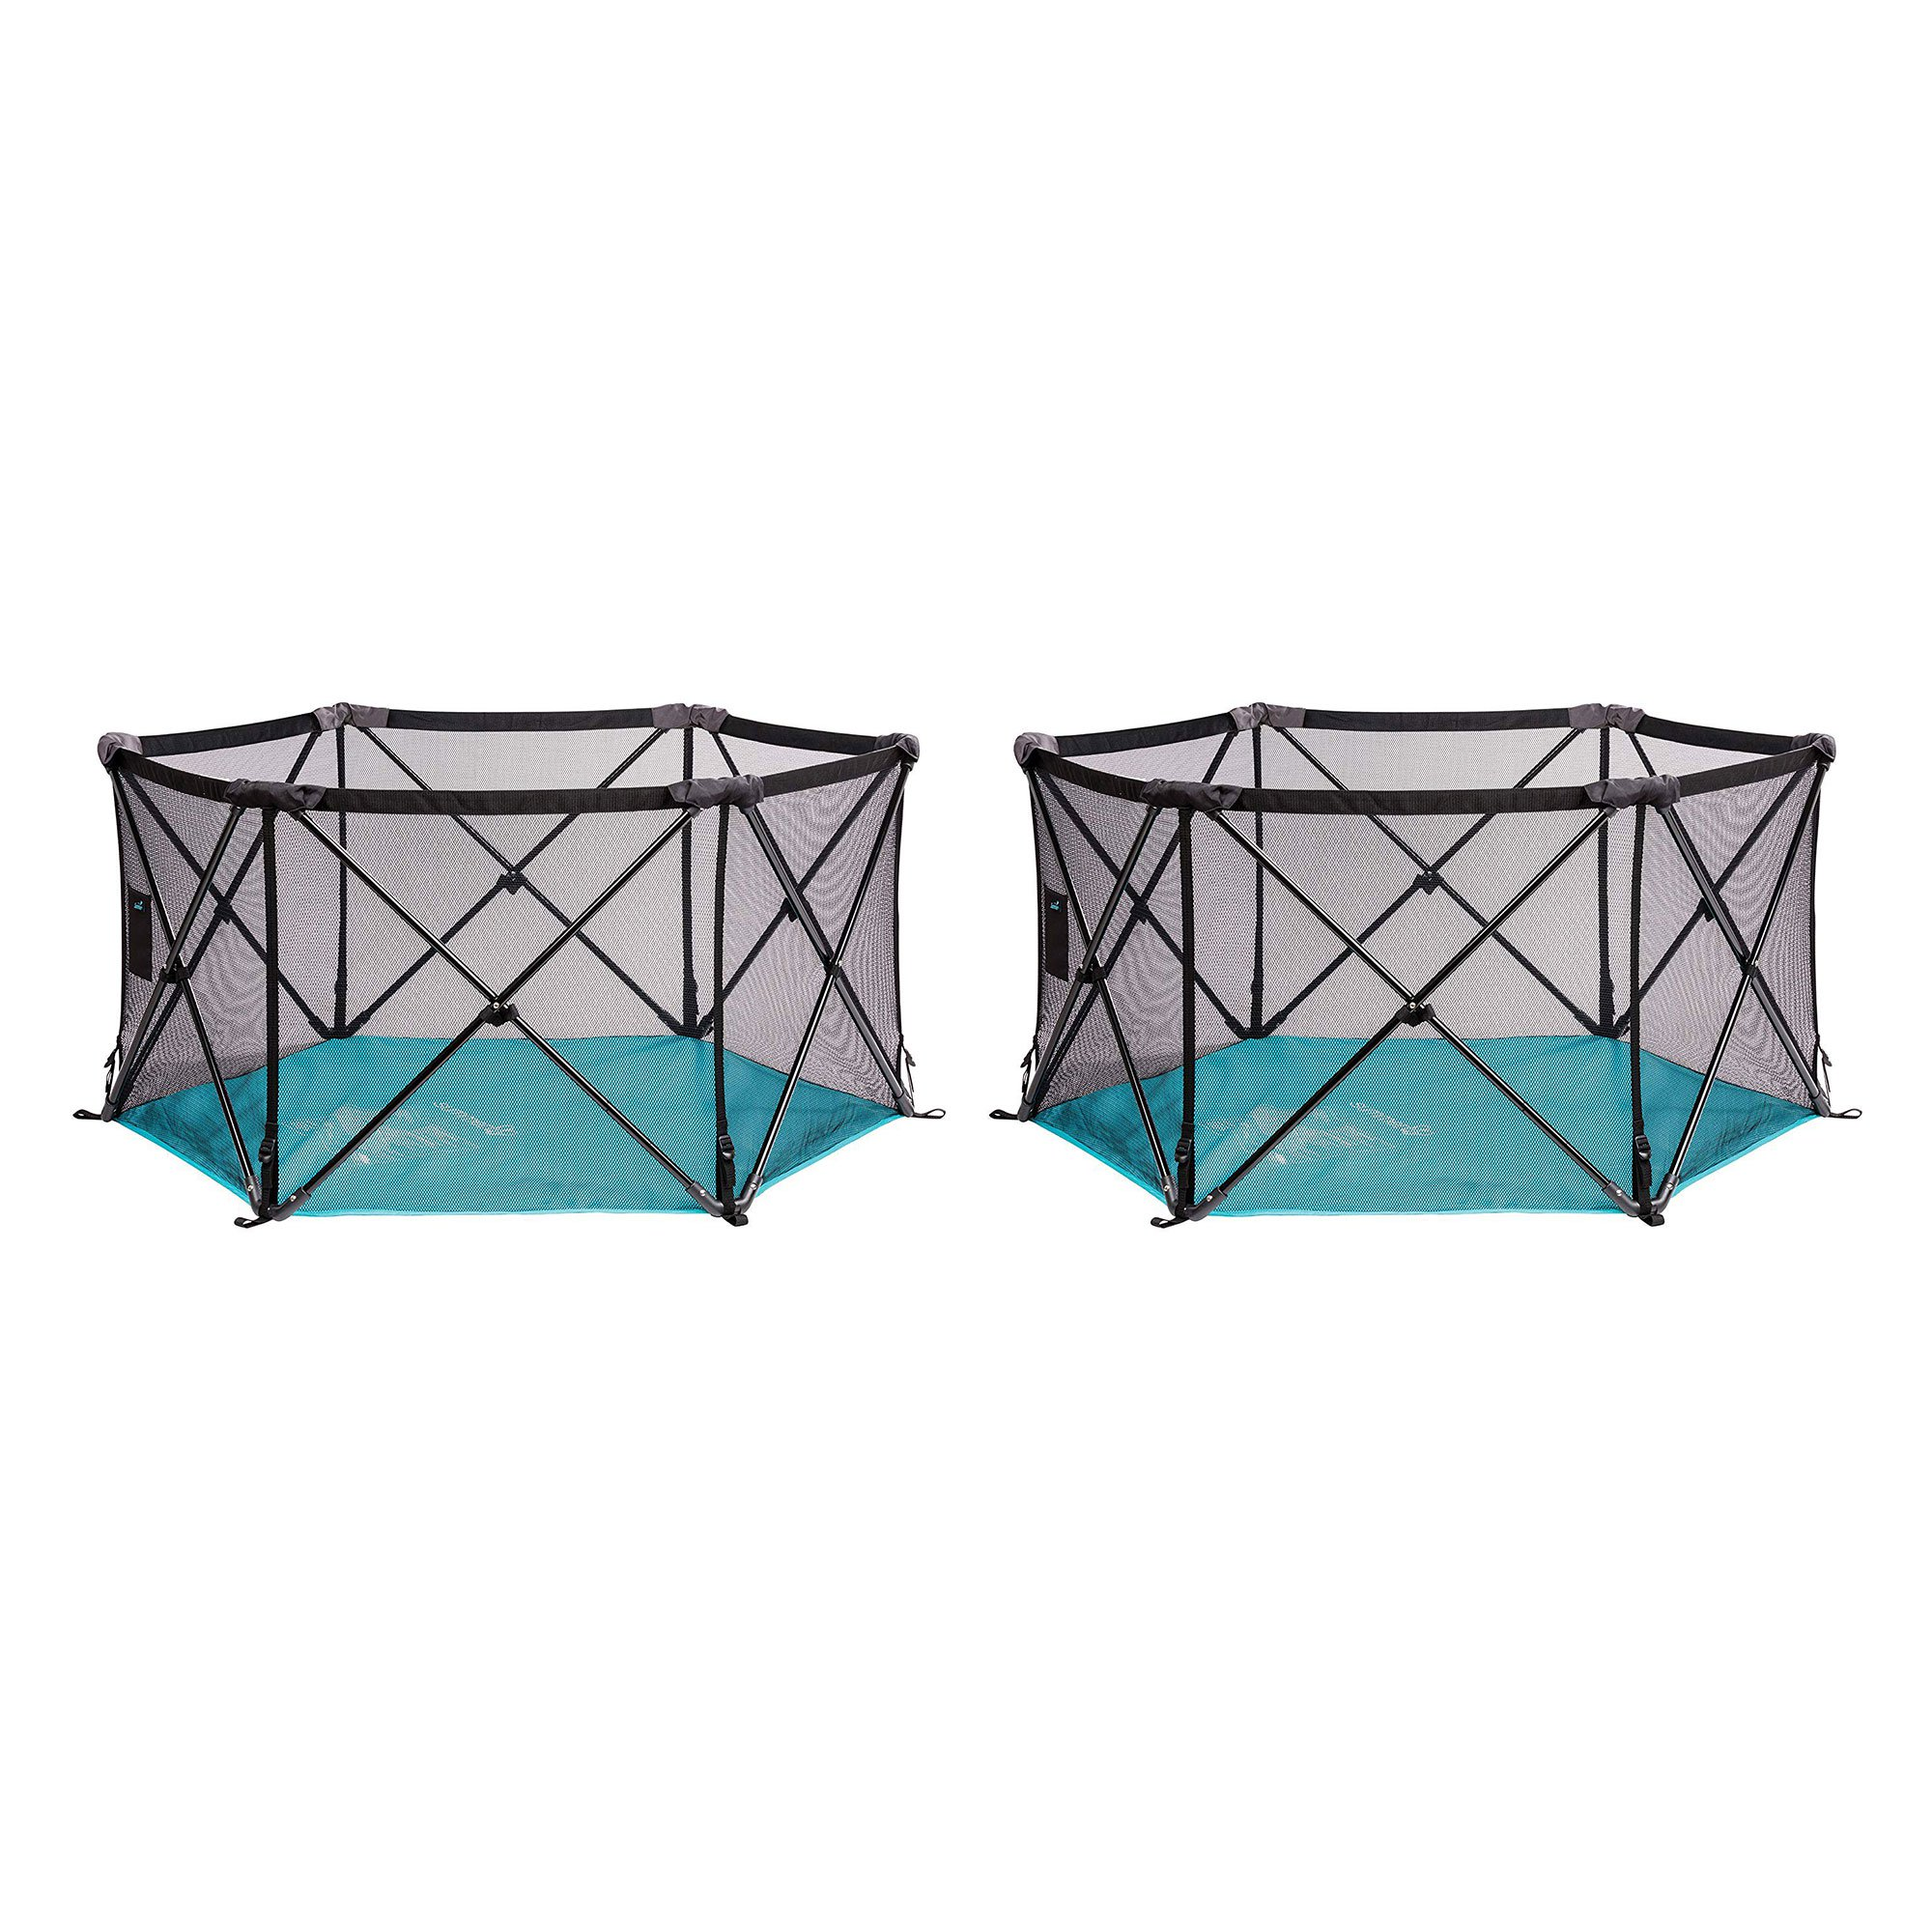 Summer Infant Lightweight Pop n Play Portable Play Yard, Turquoise (2 Pack)